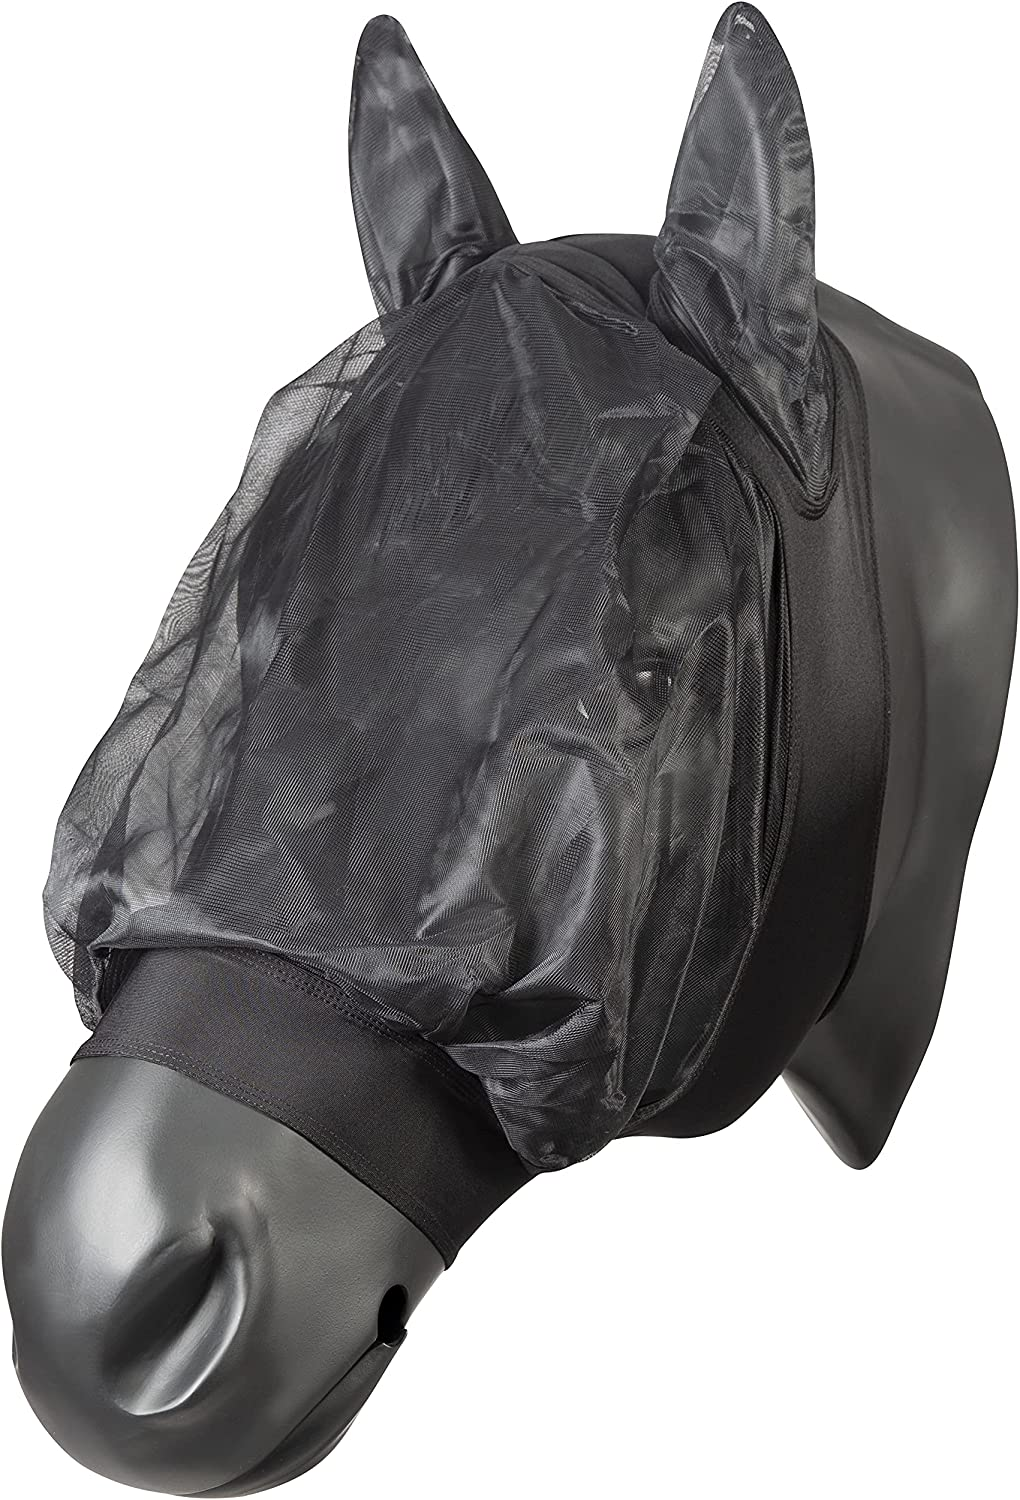 PFIFF 101977 Fly mask for Genuine Horses Full Size: Special price Black Warmblood